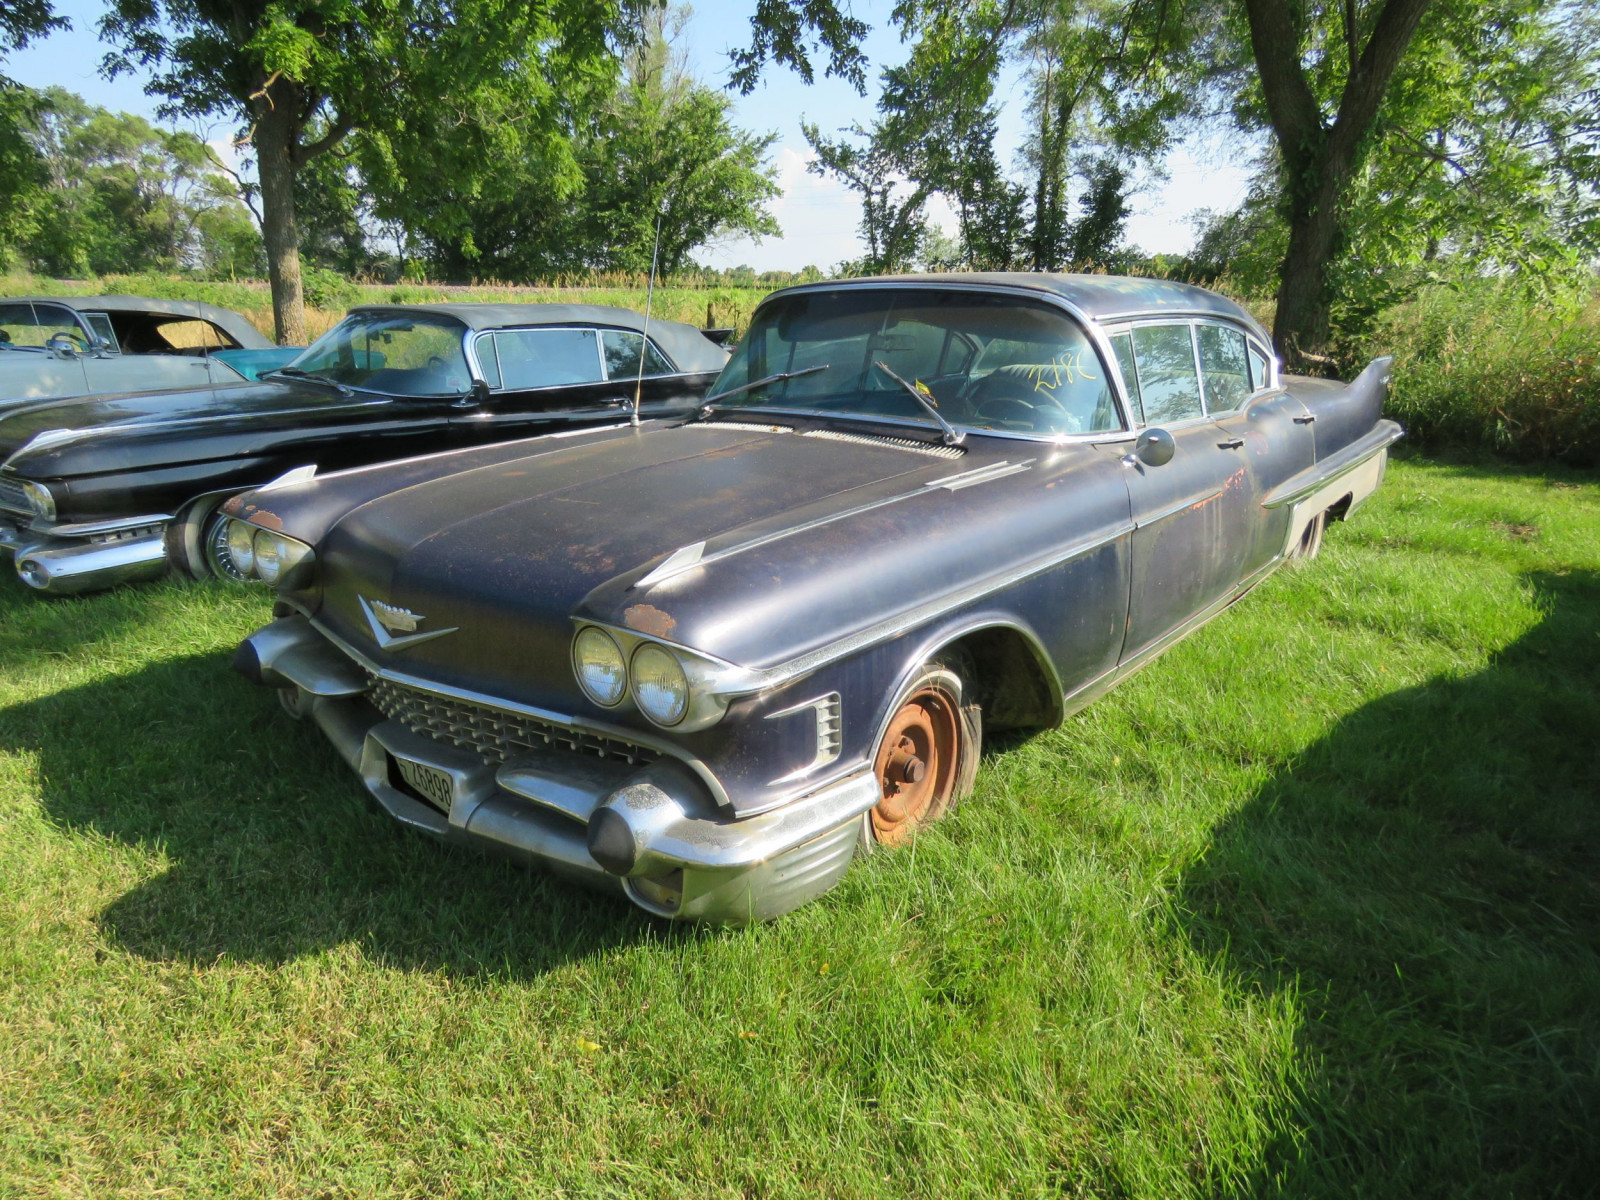 1958 Cadillac Fleetwood 60 Series 4dr HT - Image 1